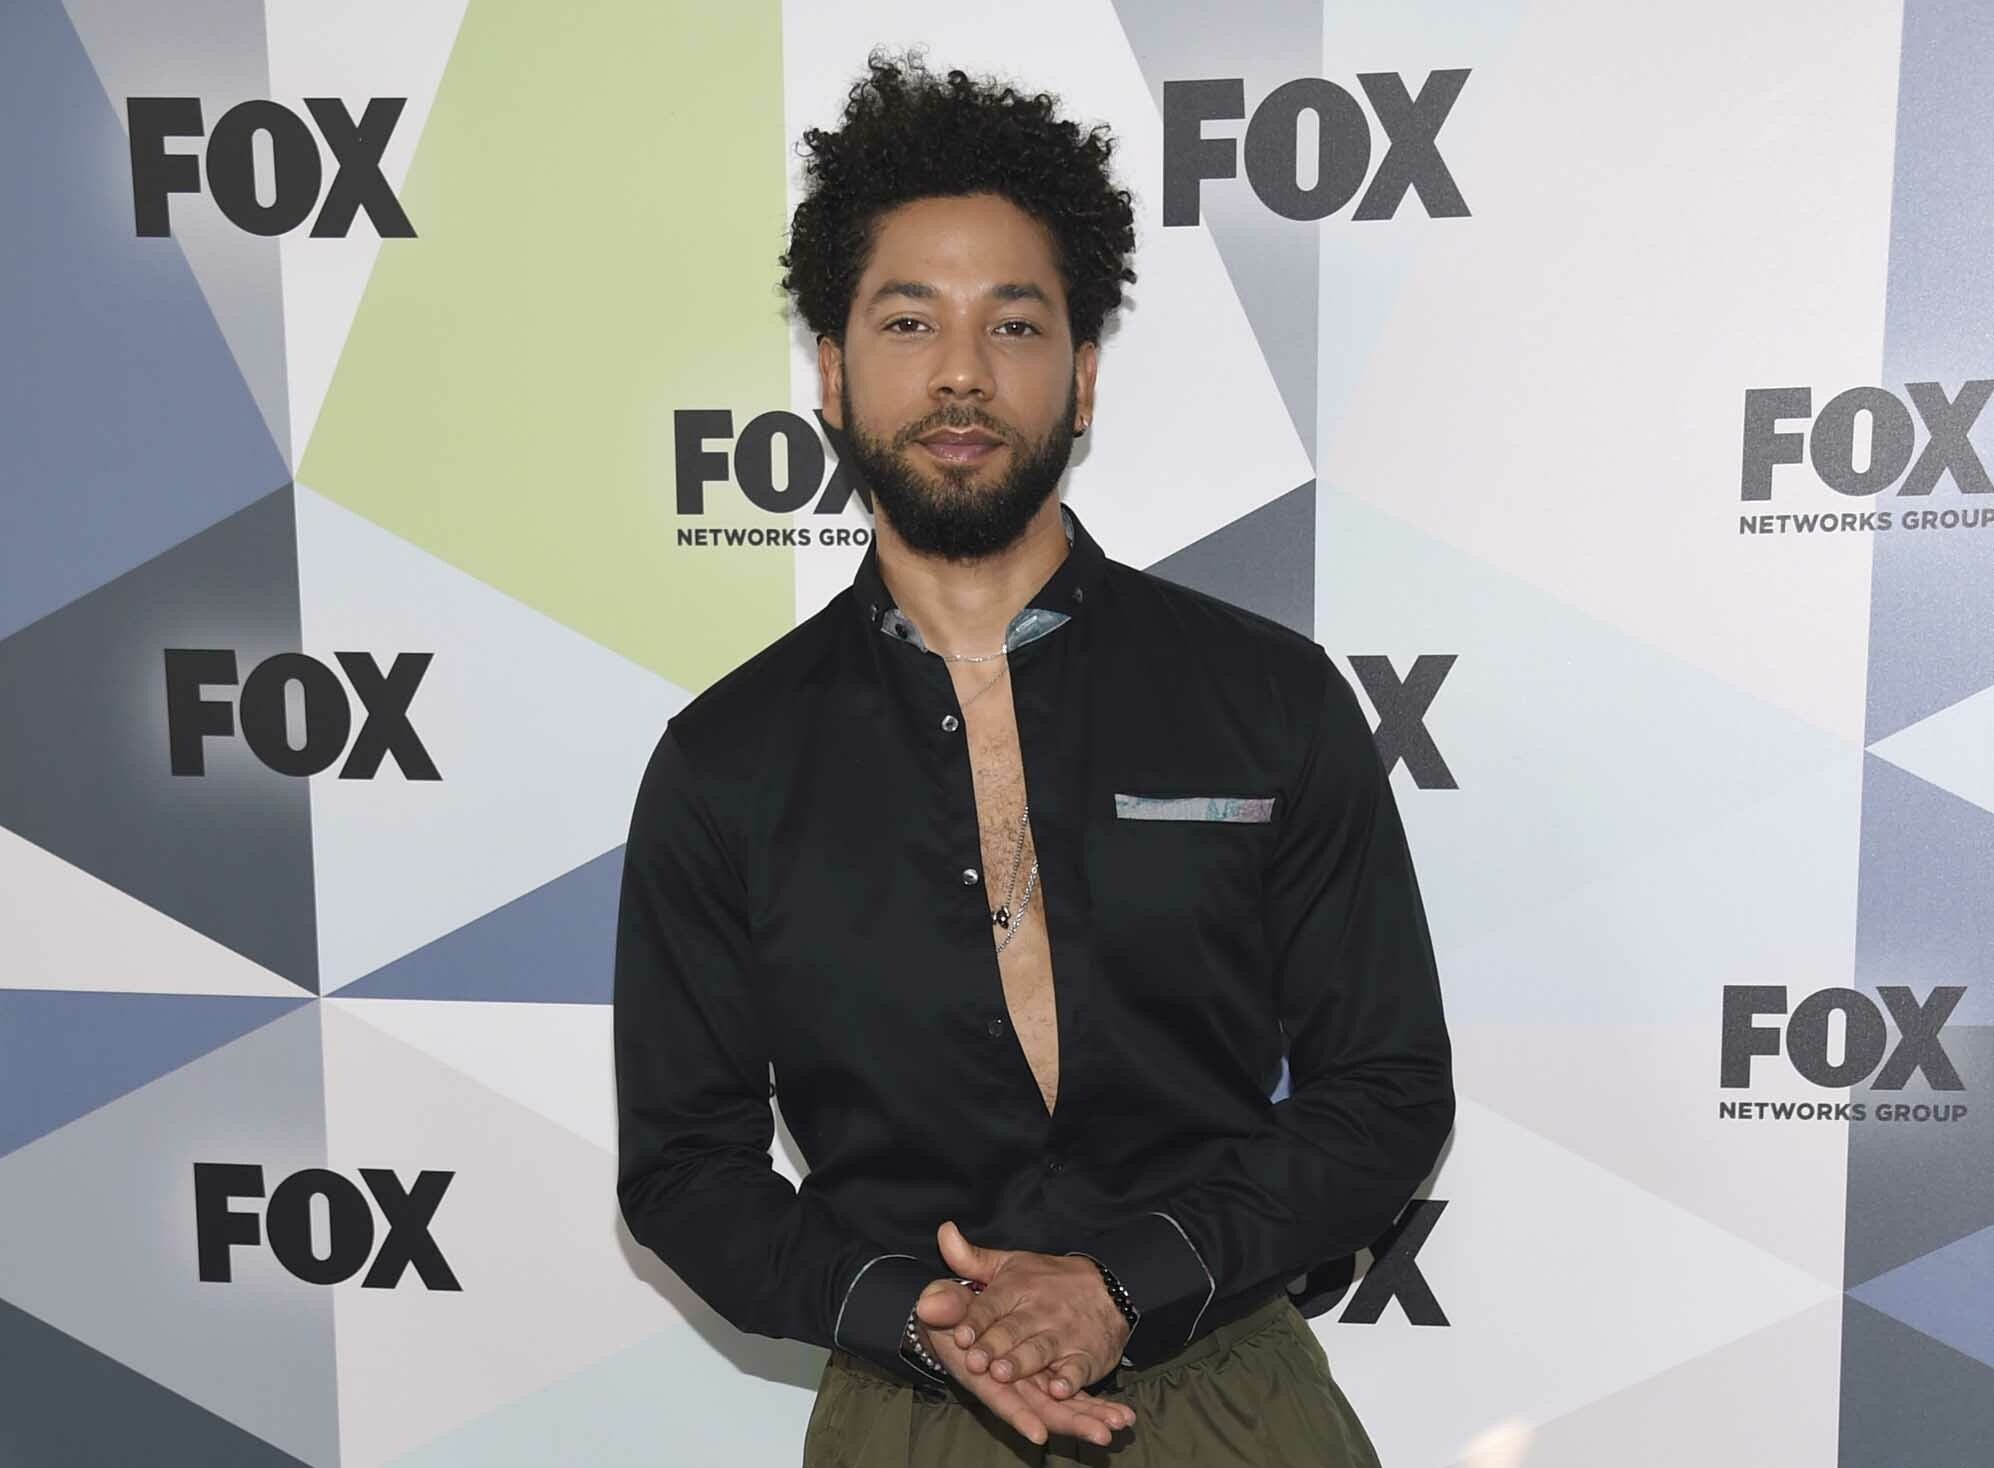 'Empire' cast member alleges homophobic attack in Chicago